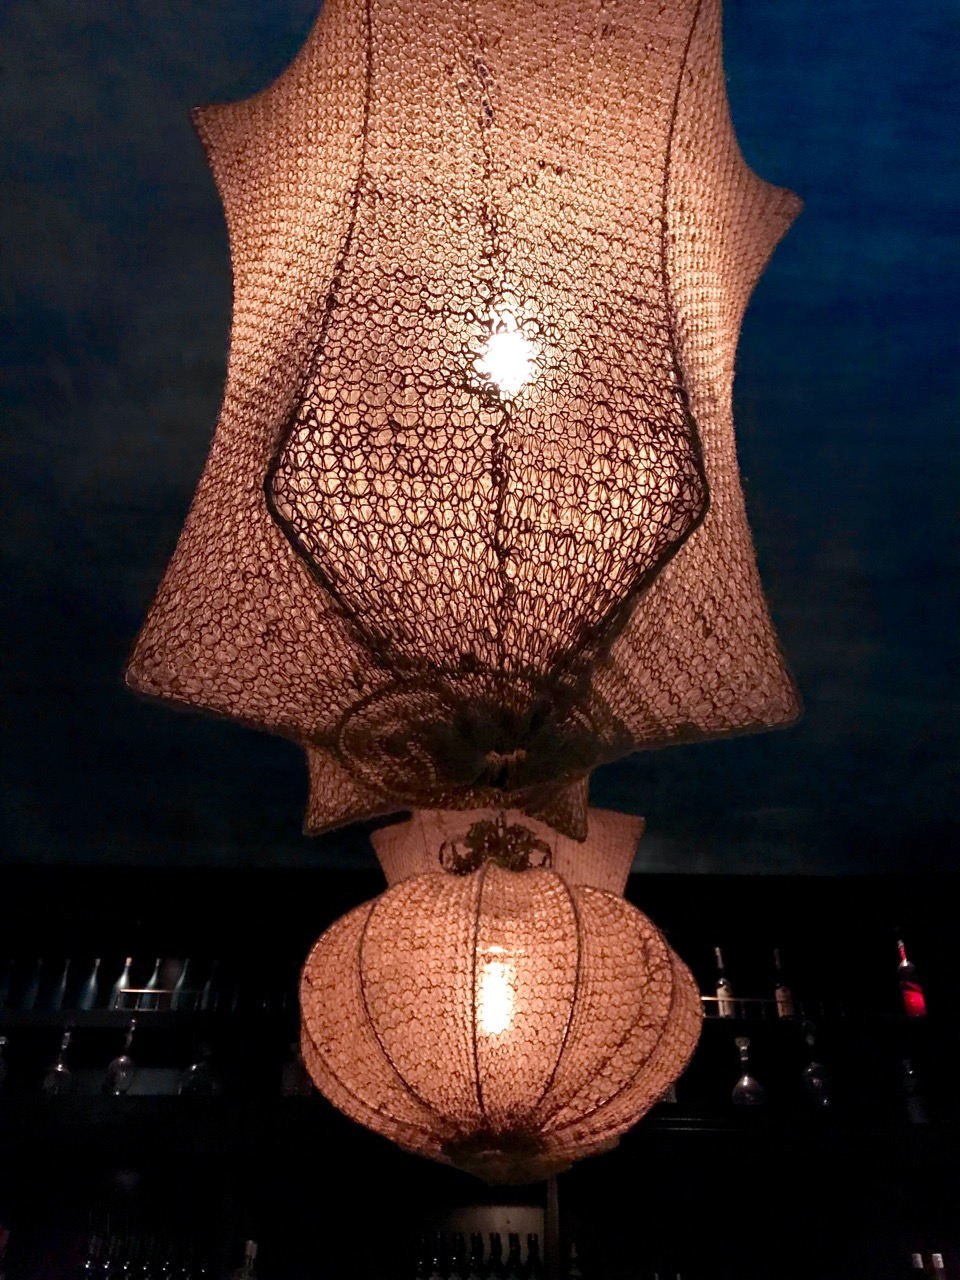 marseille-cocktail-bar-gaspard-lamp-honore